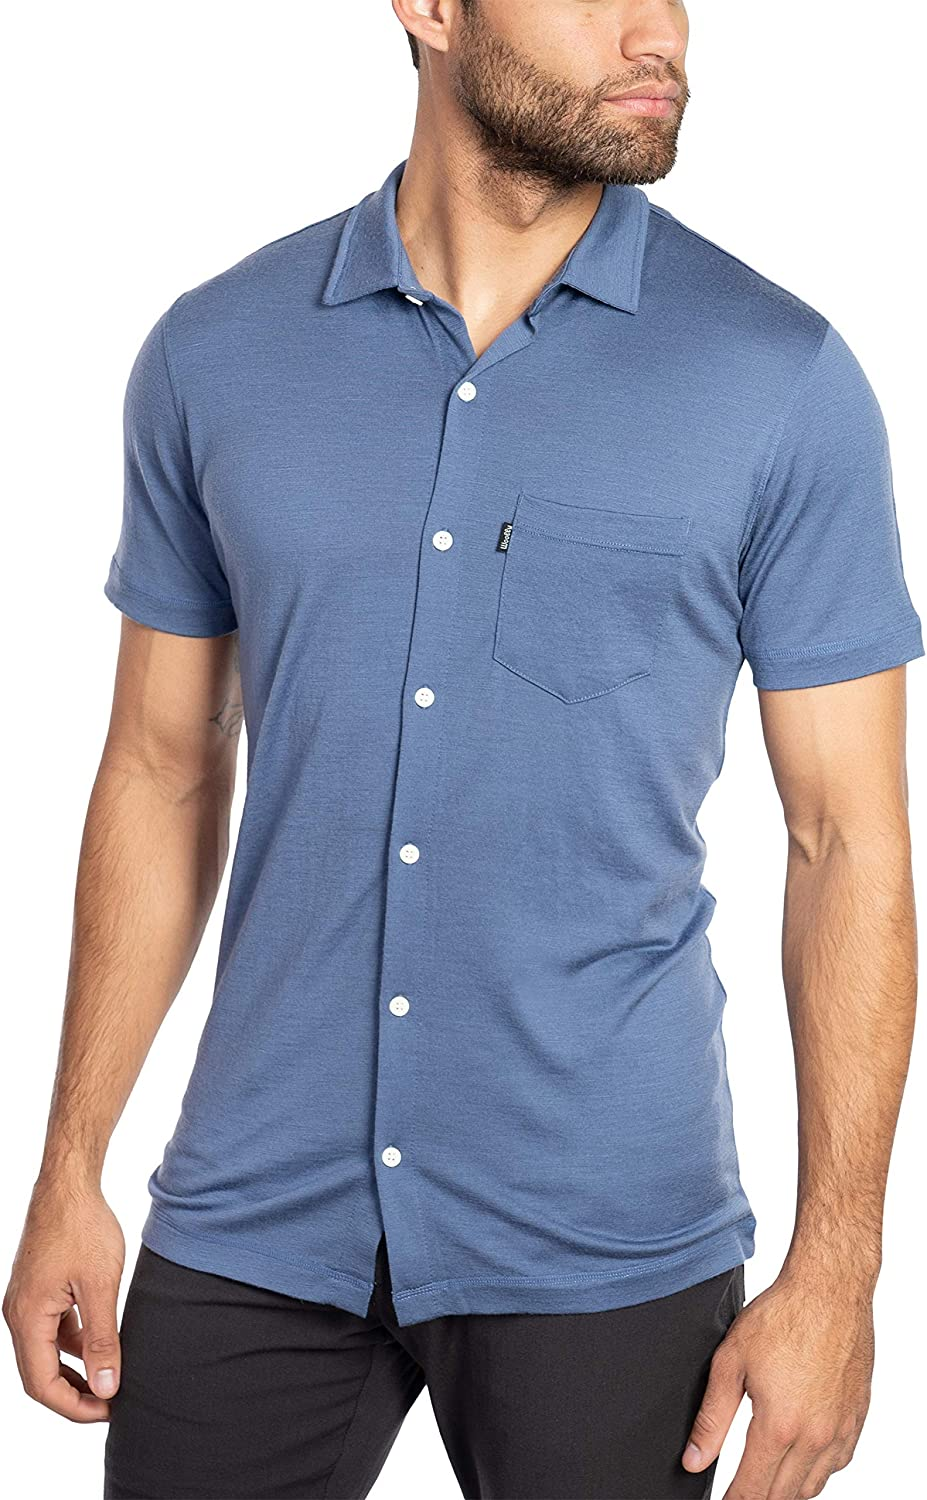 Woolly Clothing Men's Merino Wool Short Sleeve Button Up - Wicking Breathable Anti-Odor